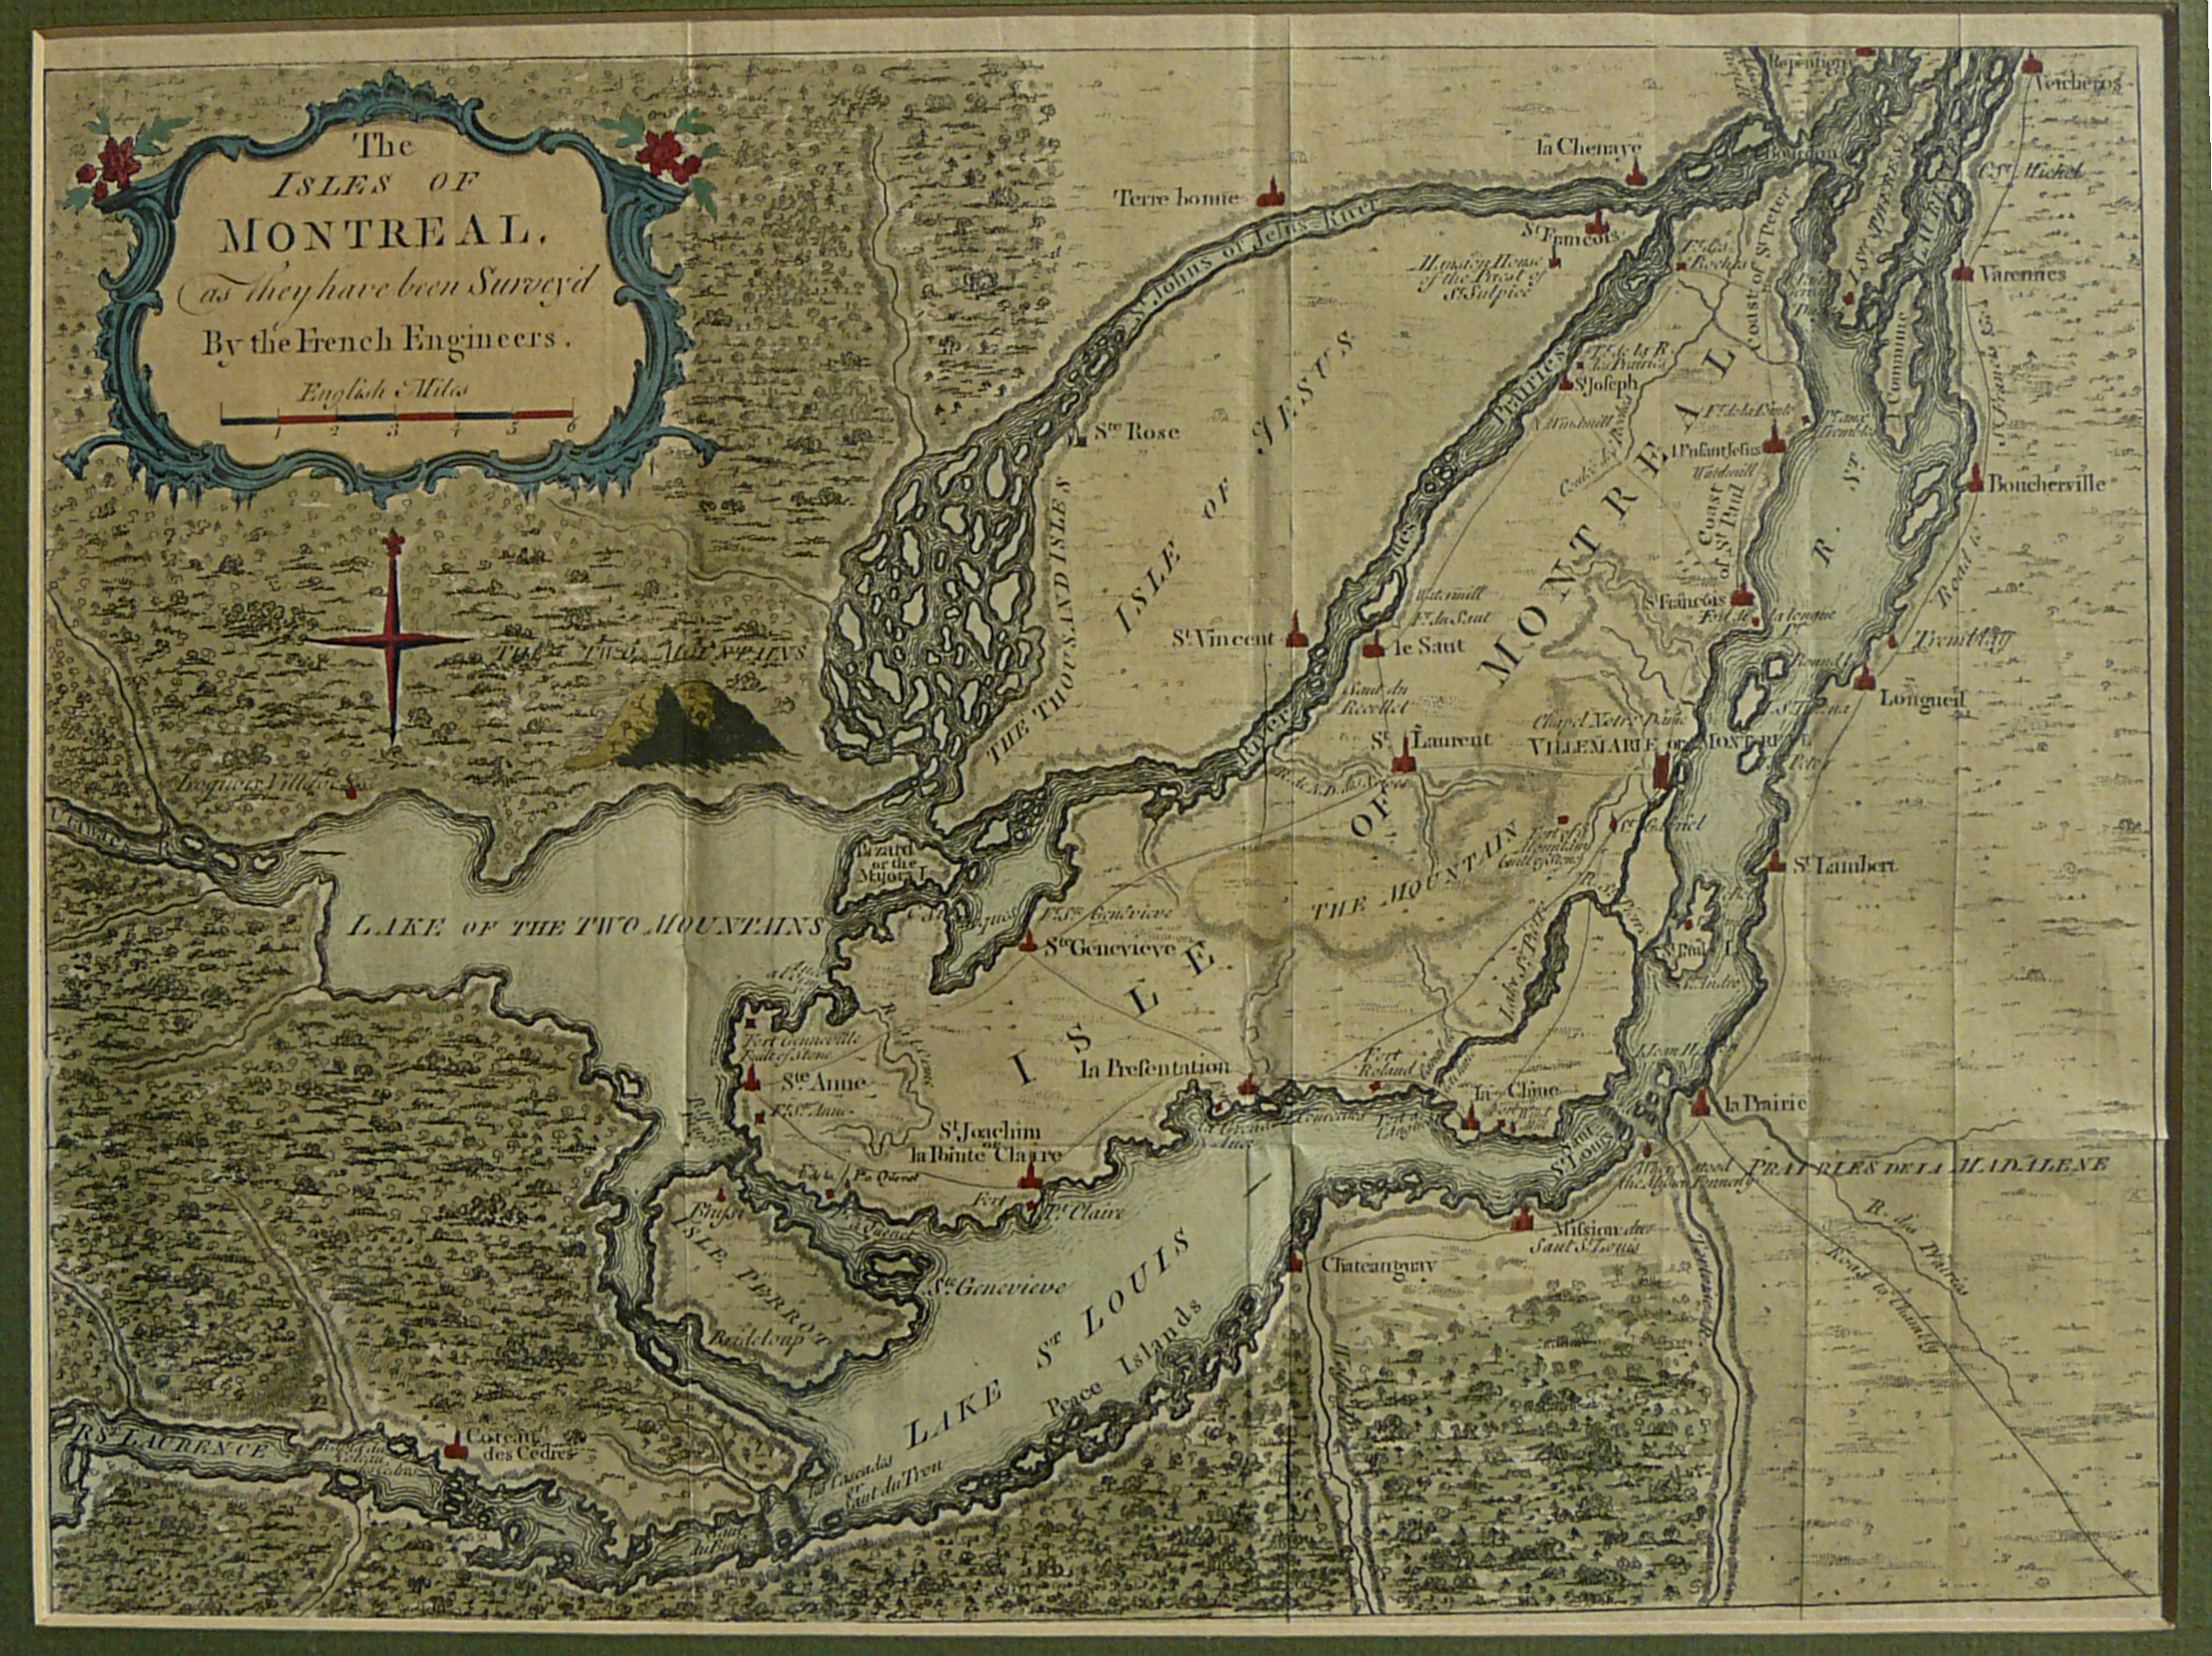 Old Maps And Their Hidden Stories O Canada - Old map of canada